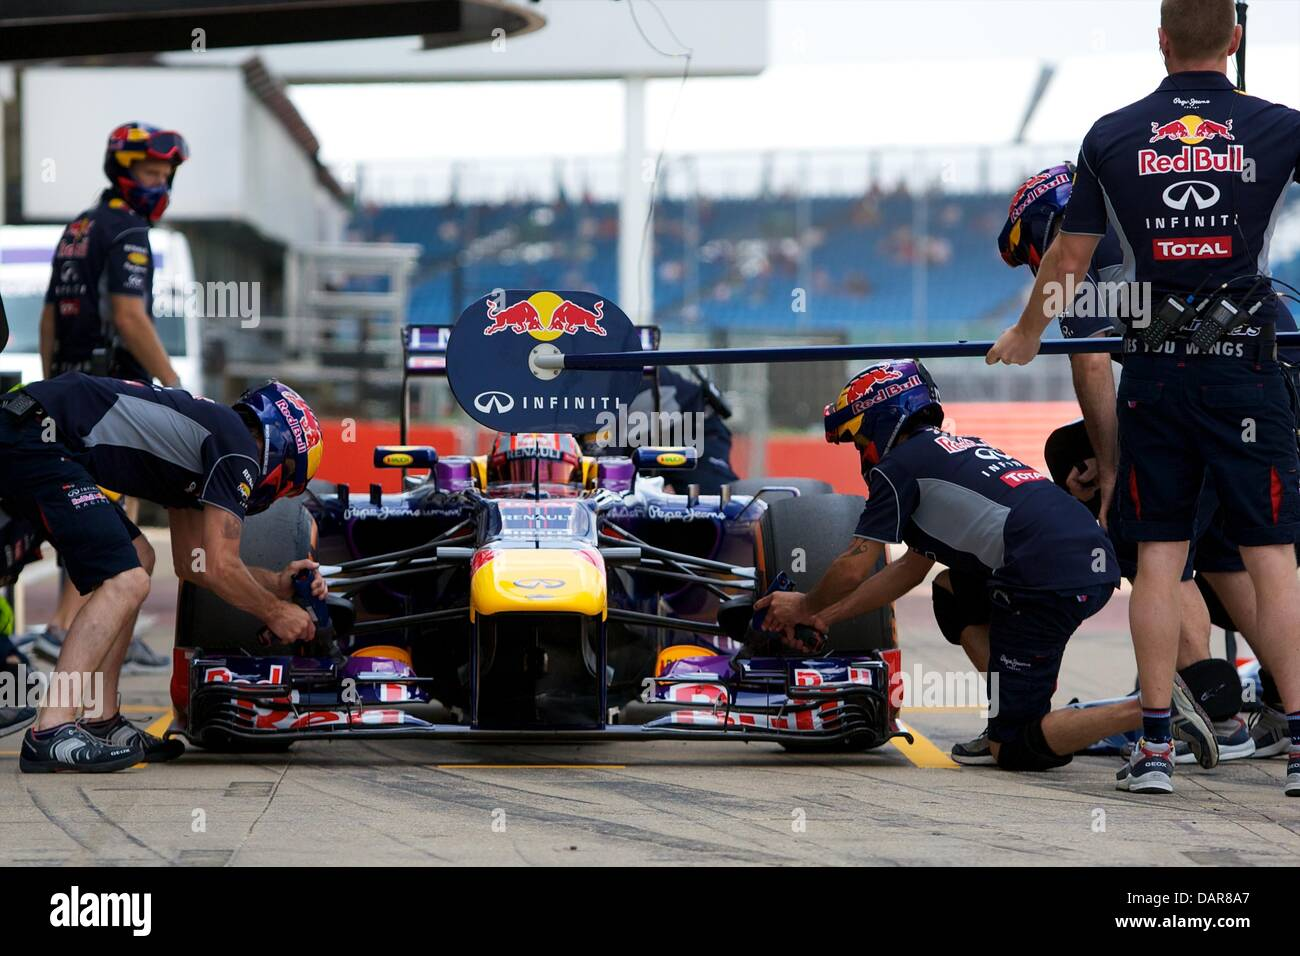 Silverstone, UK. 17th July, 2013. Infiniti Red Bull Racing Red Bull-Renault RB9 driven by Felix Da Costa during Stock Photo